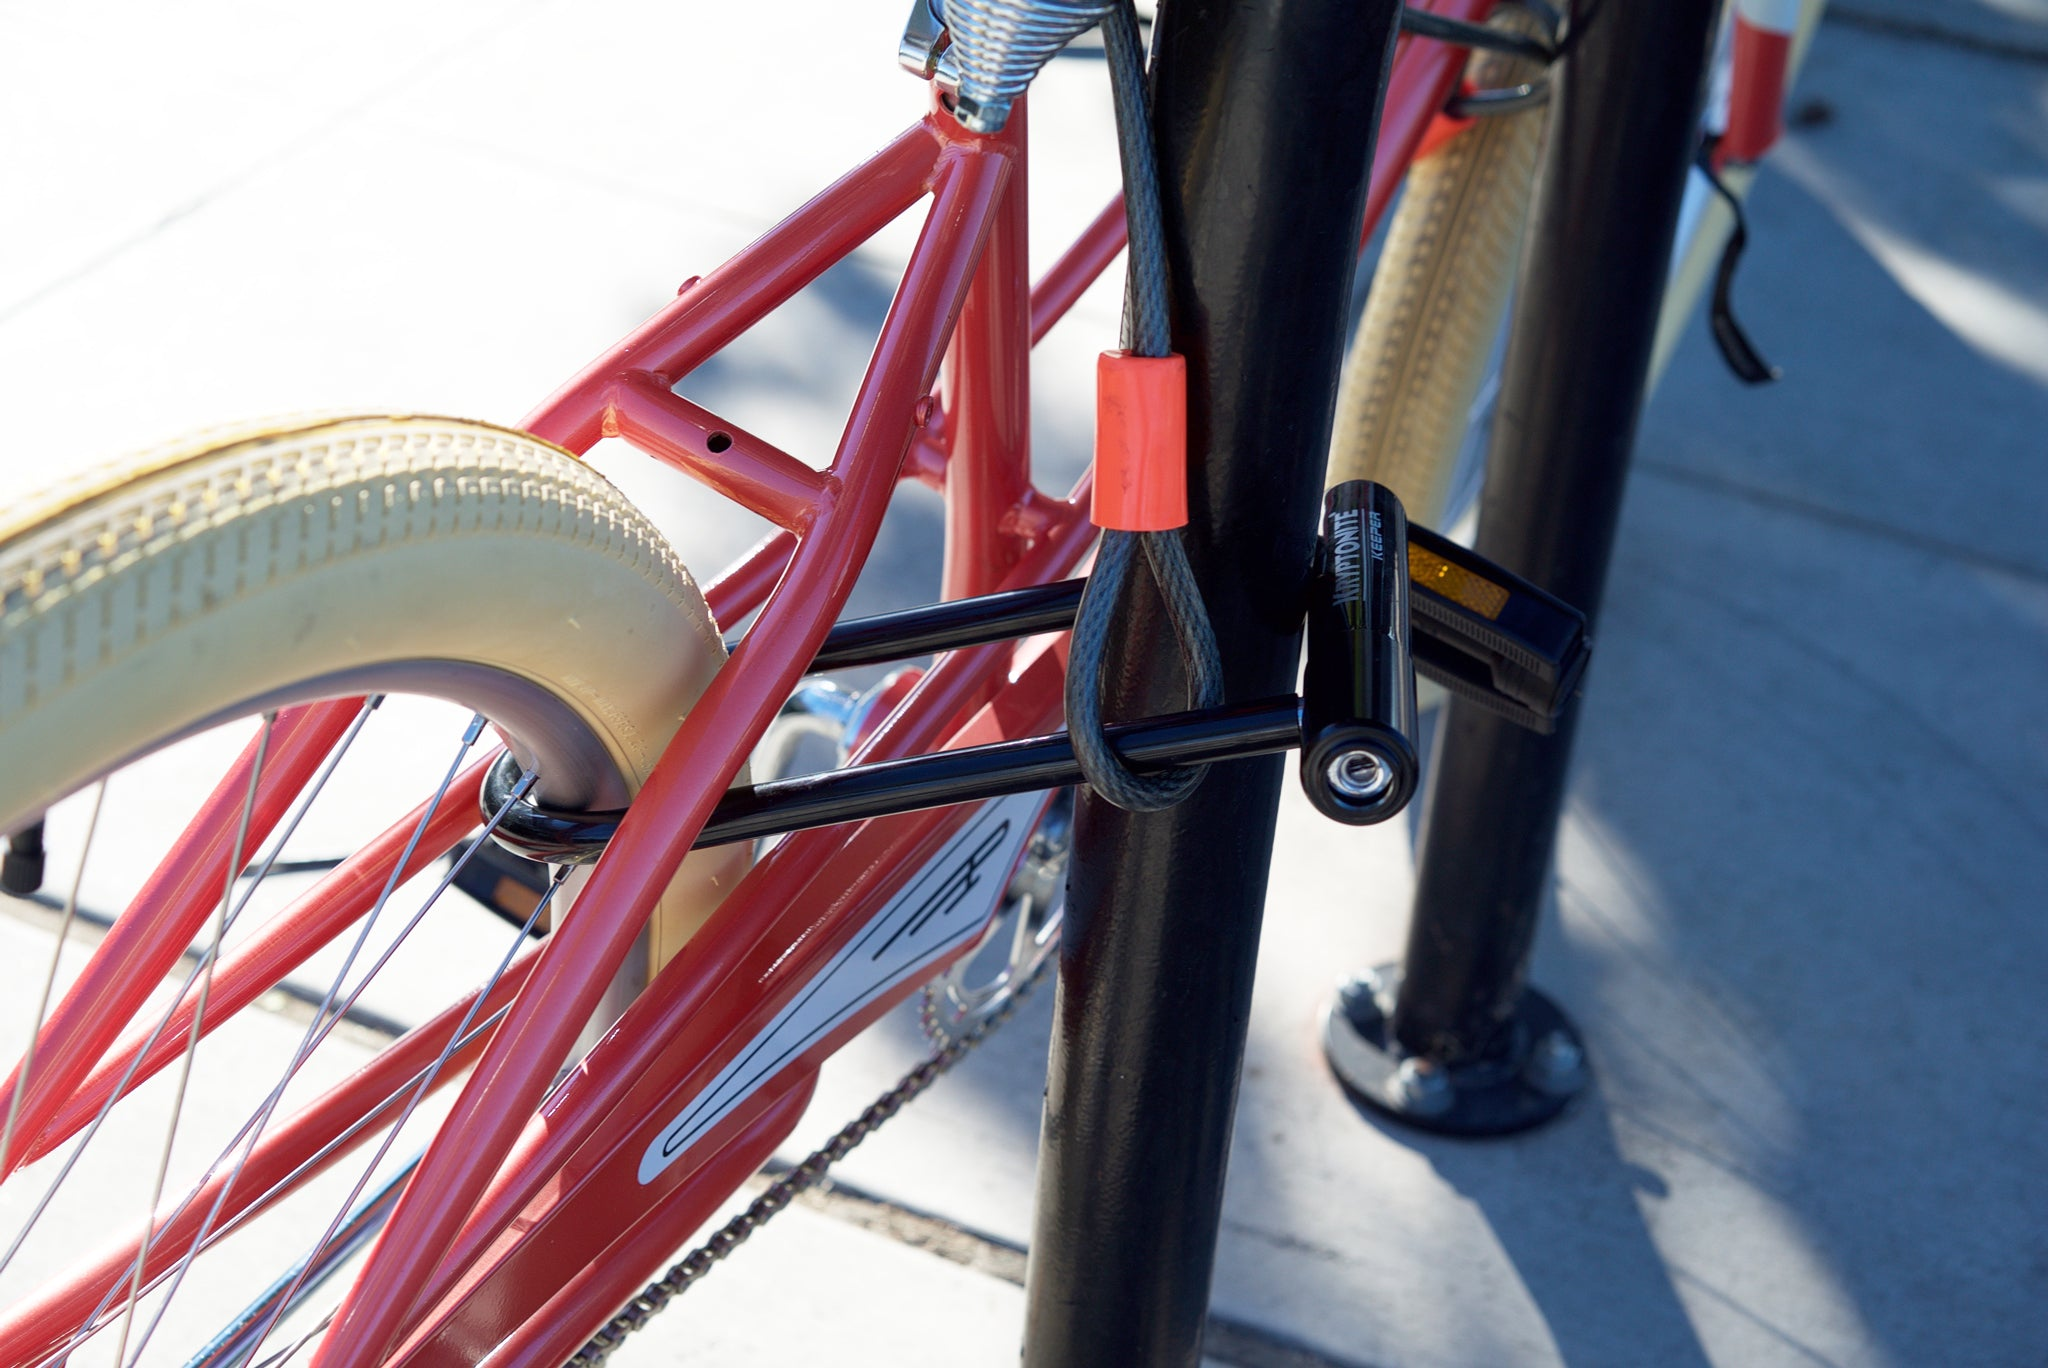 how to break a bike lock without a tool